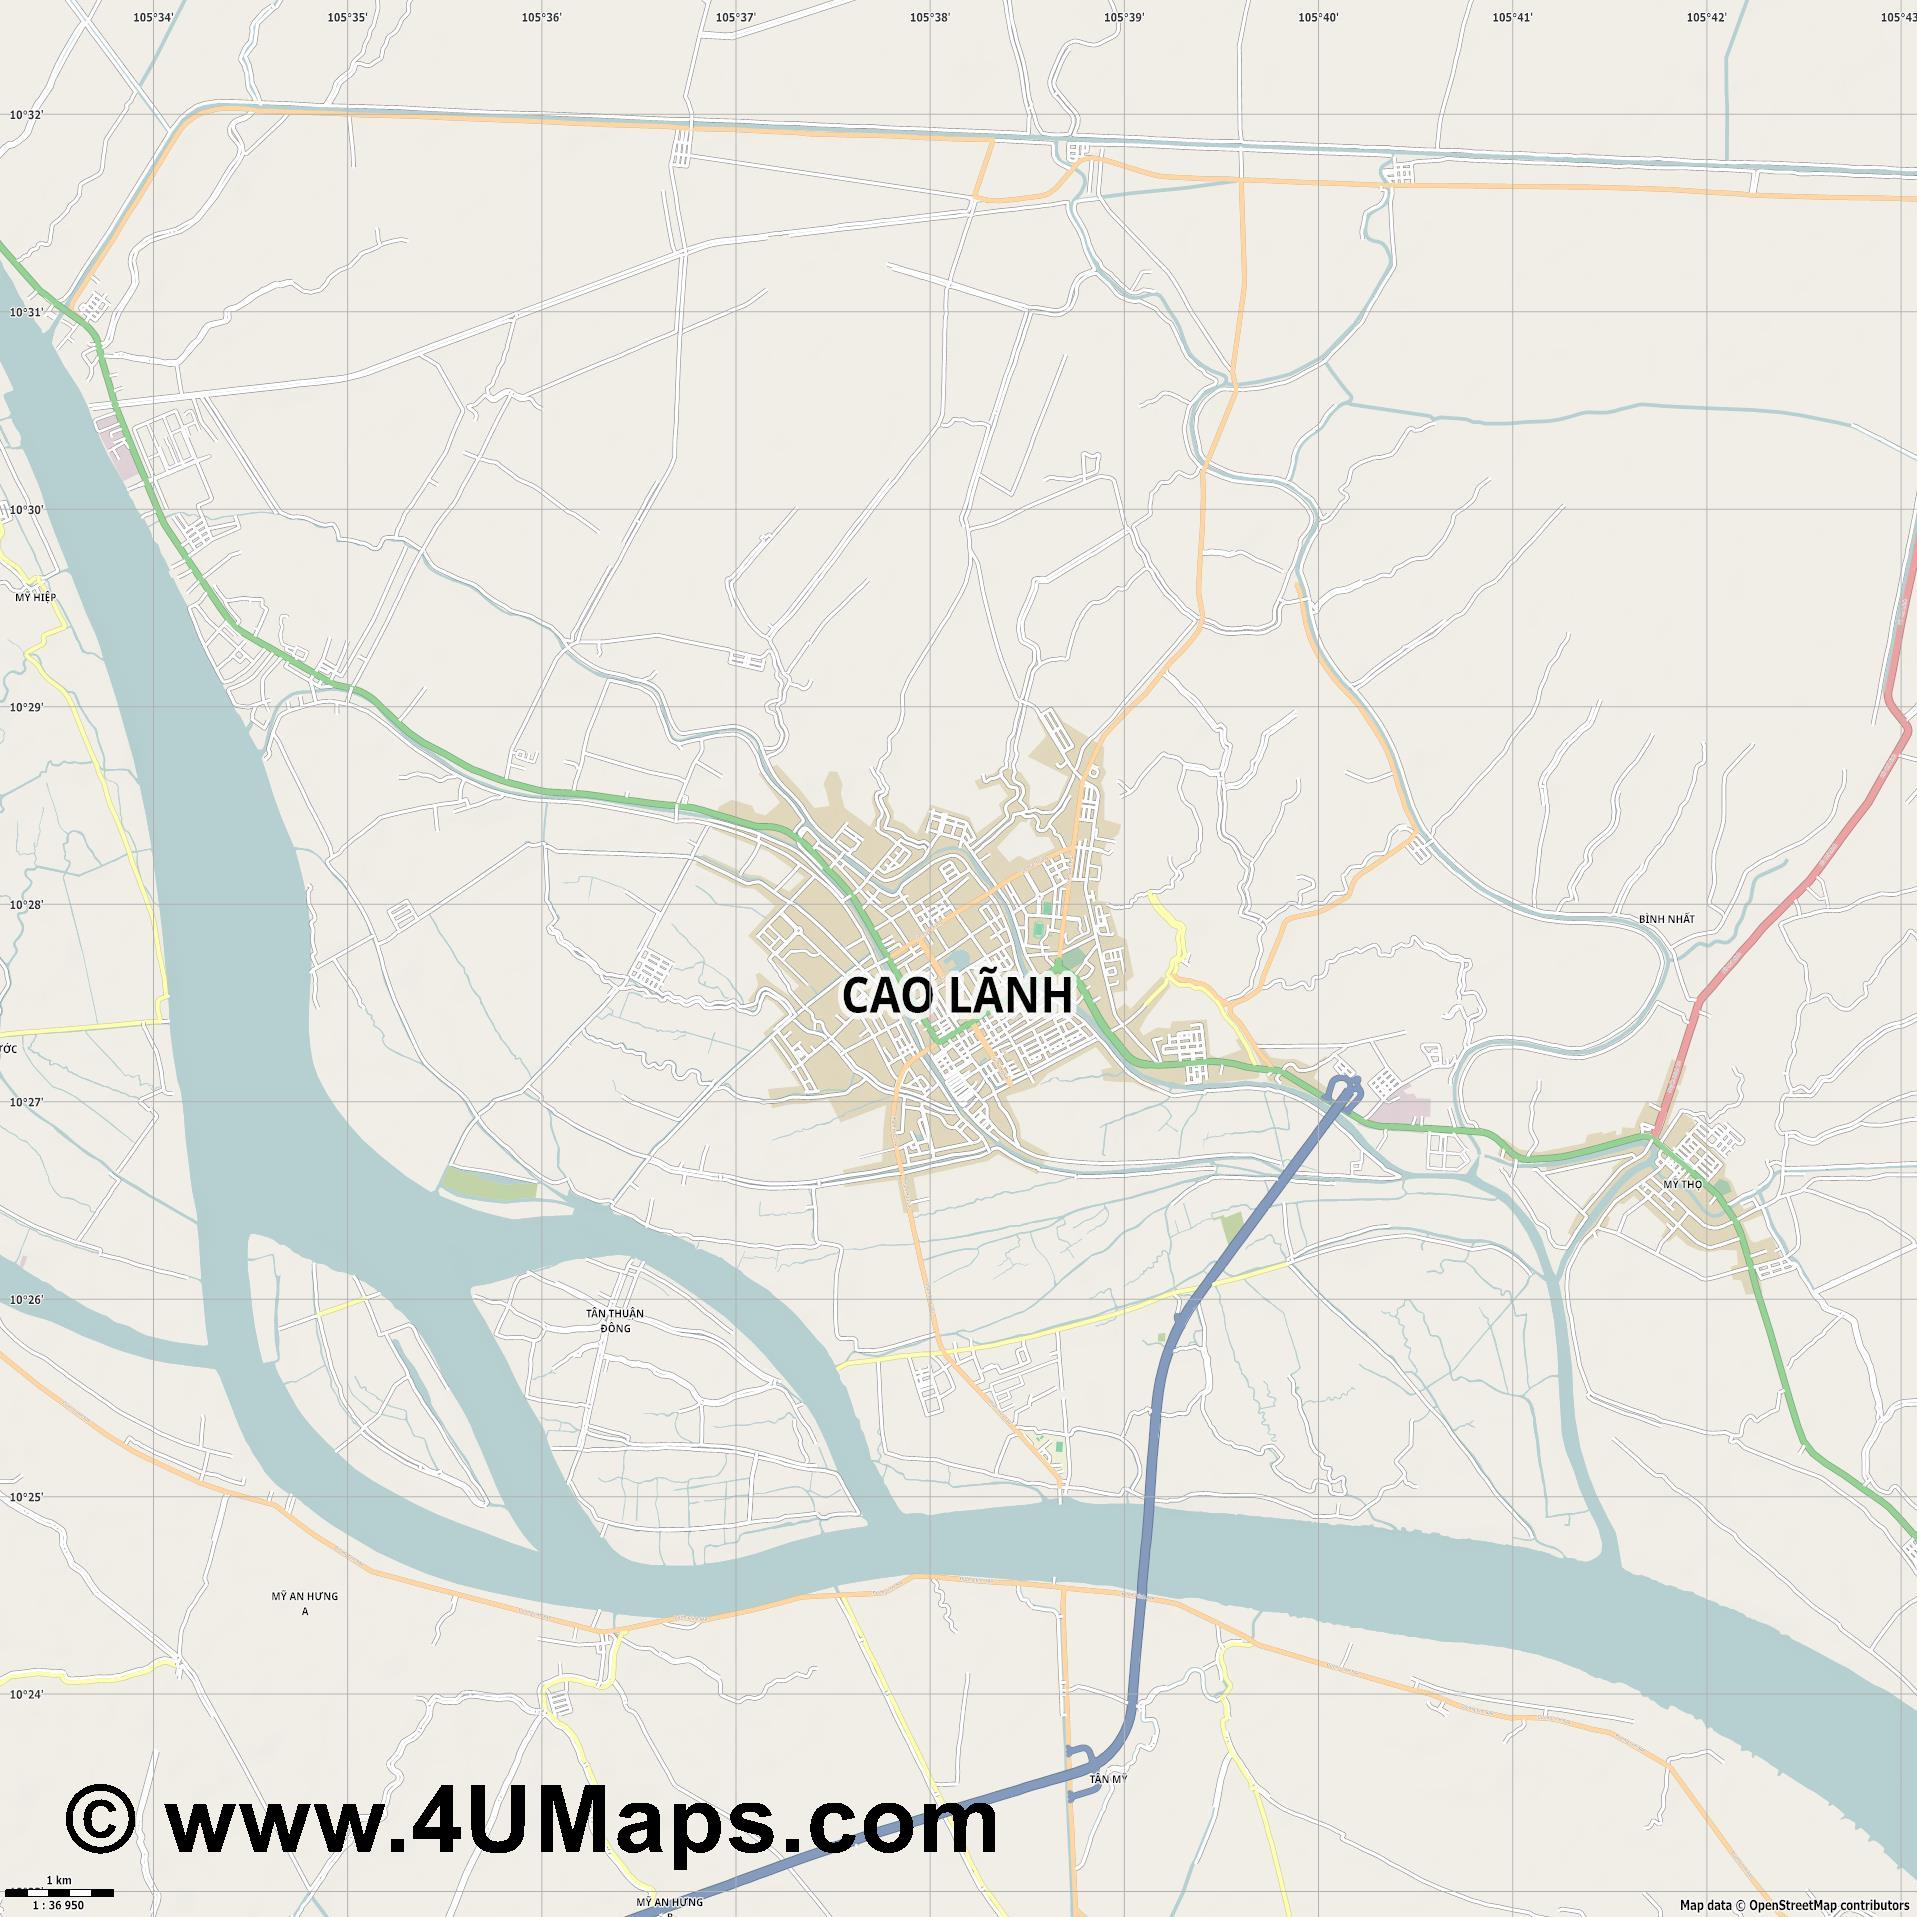 Cao Lãnh Cao Lanh  jpg high detail, large area preview vector city map